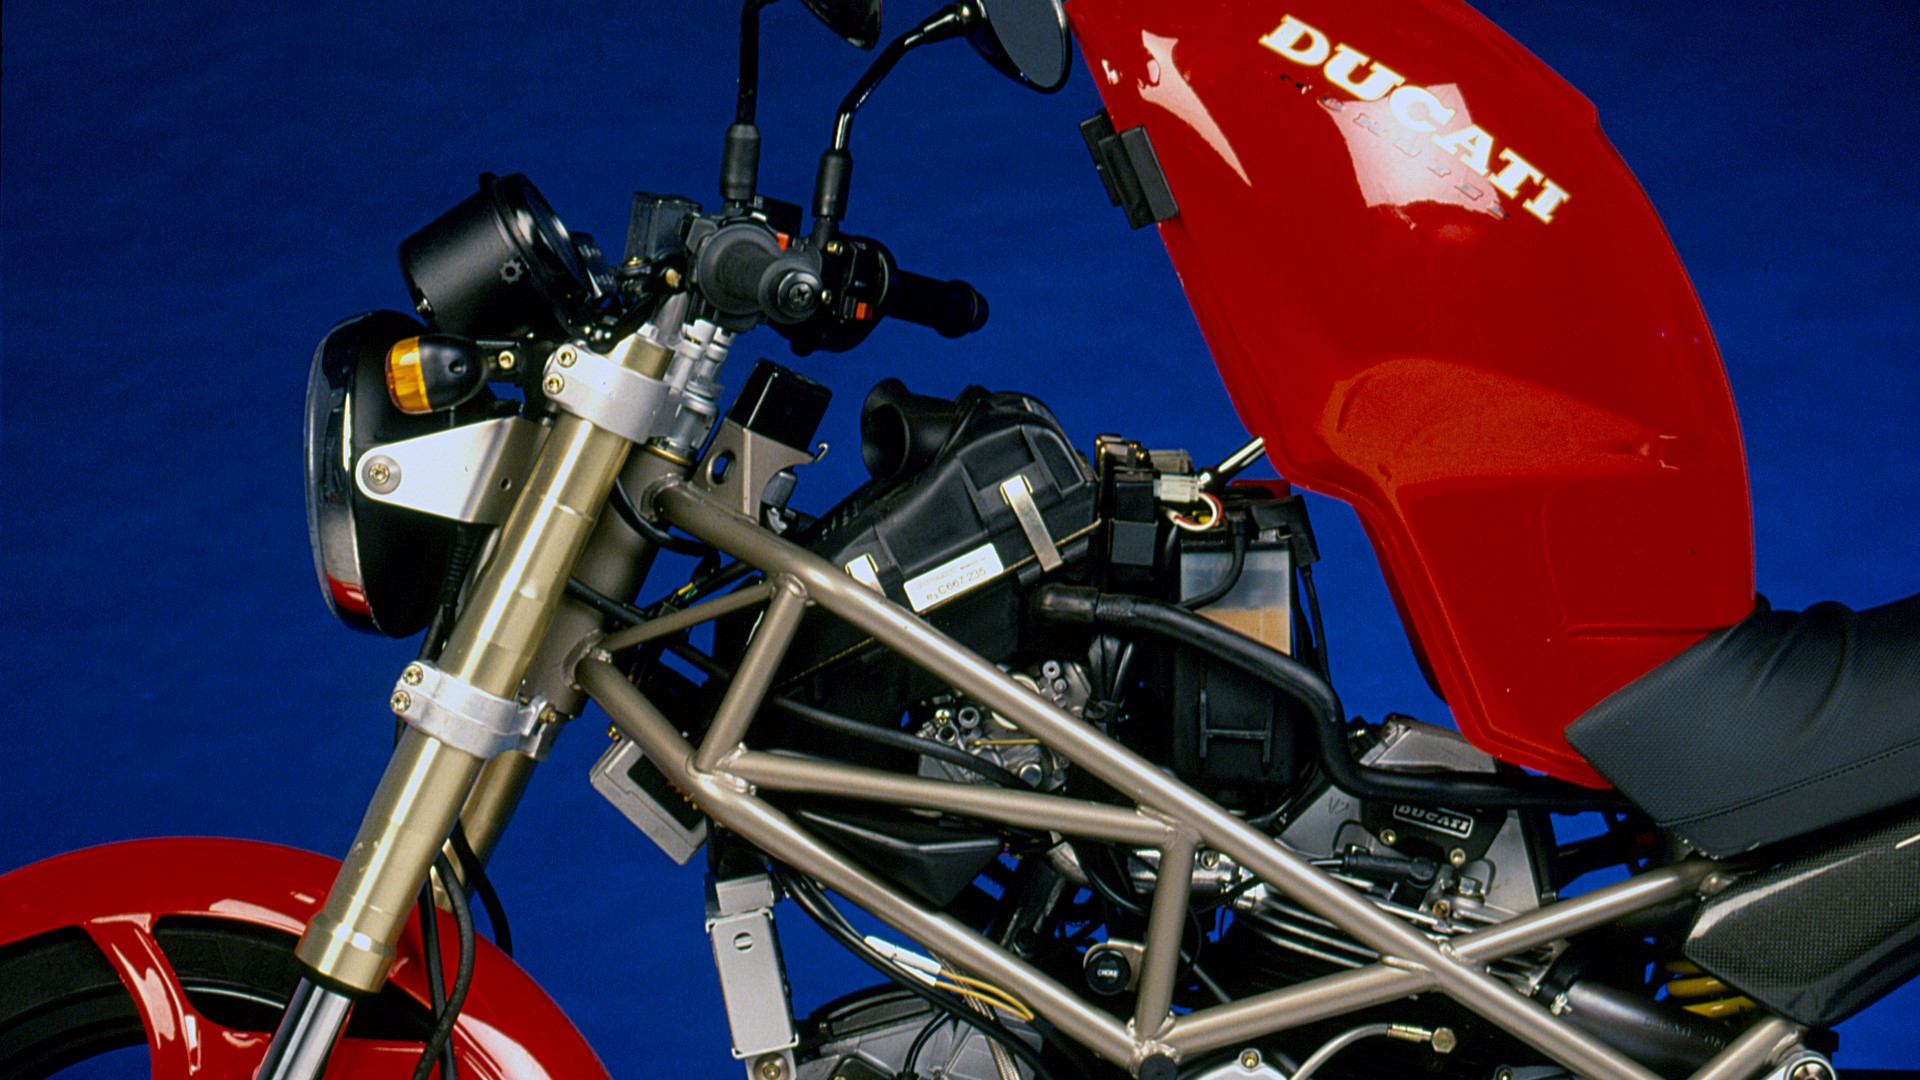 Retroprueba Ducati Monster 900 de 1993 fotos